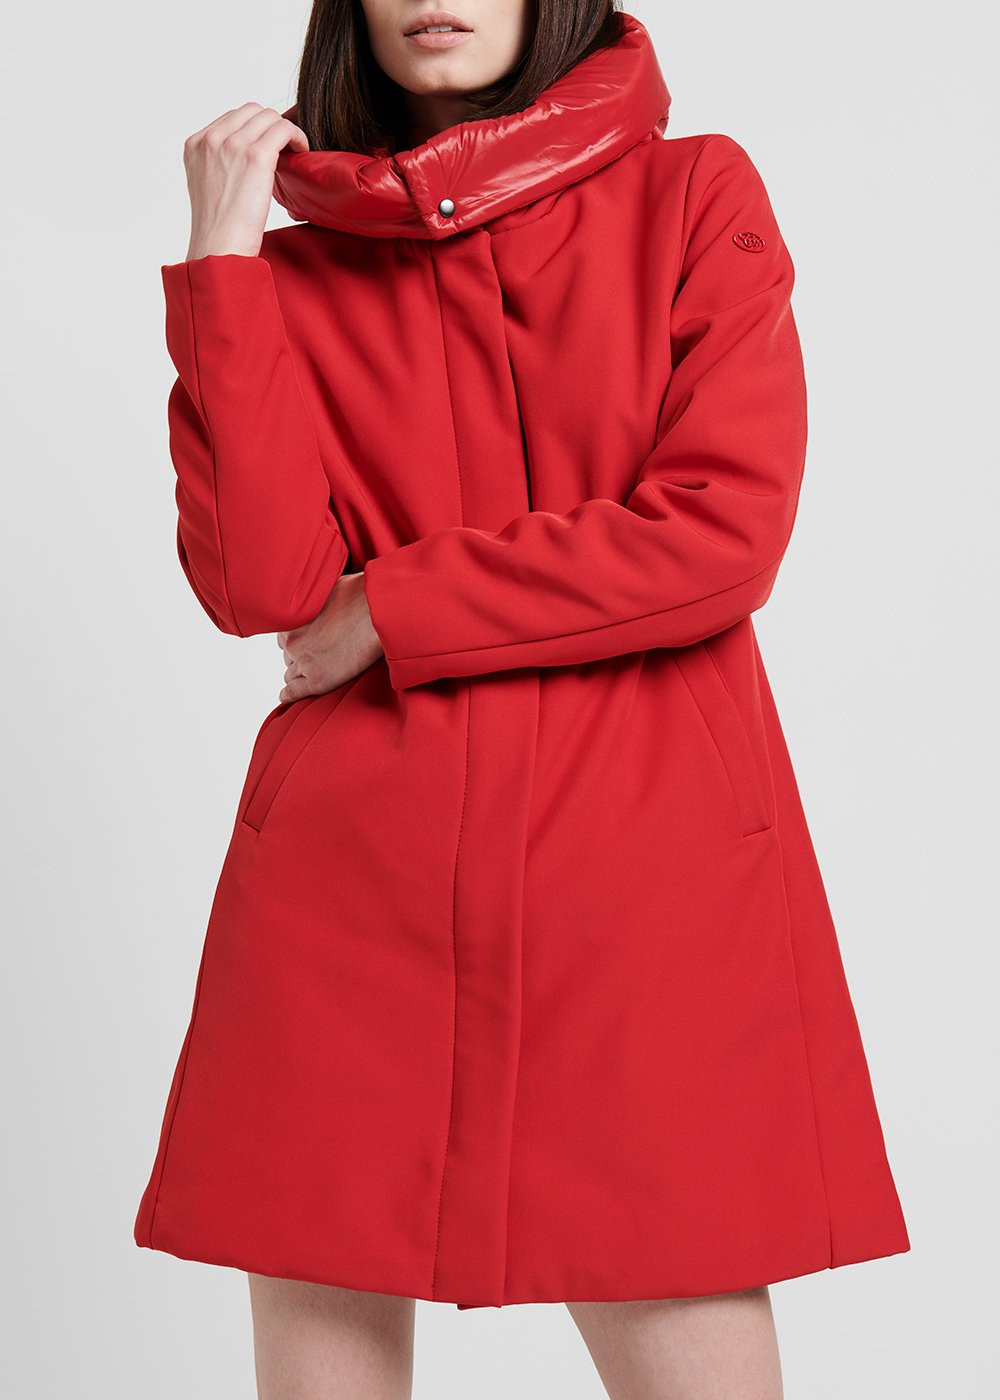 Coat in technical fabric with hood - Woman